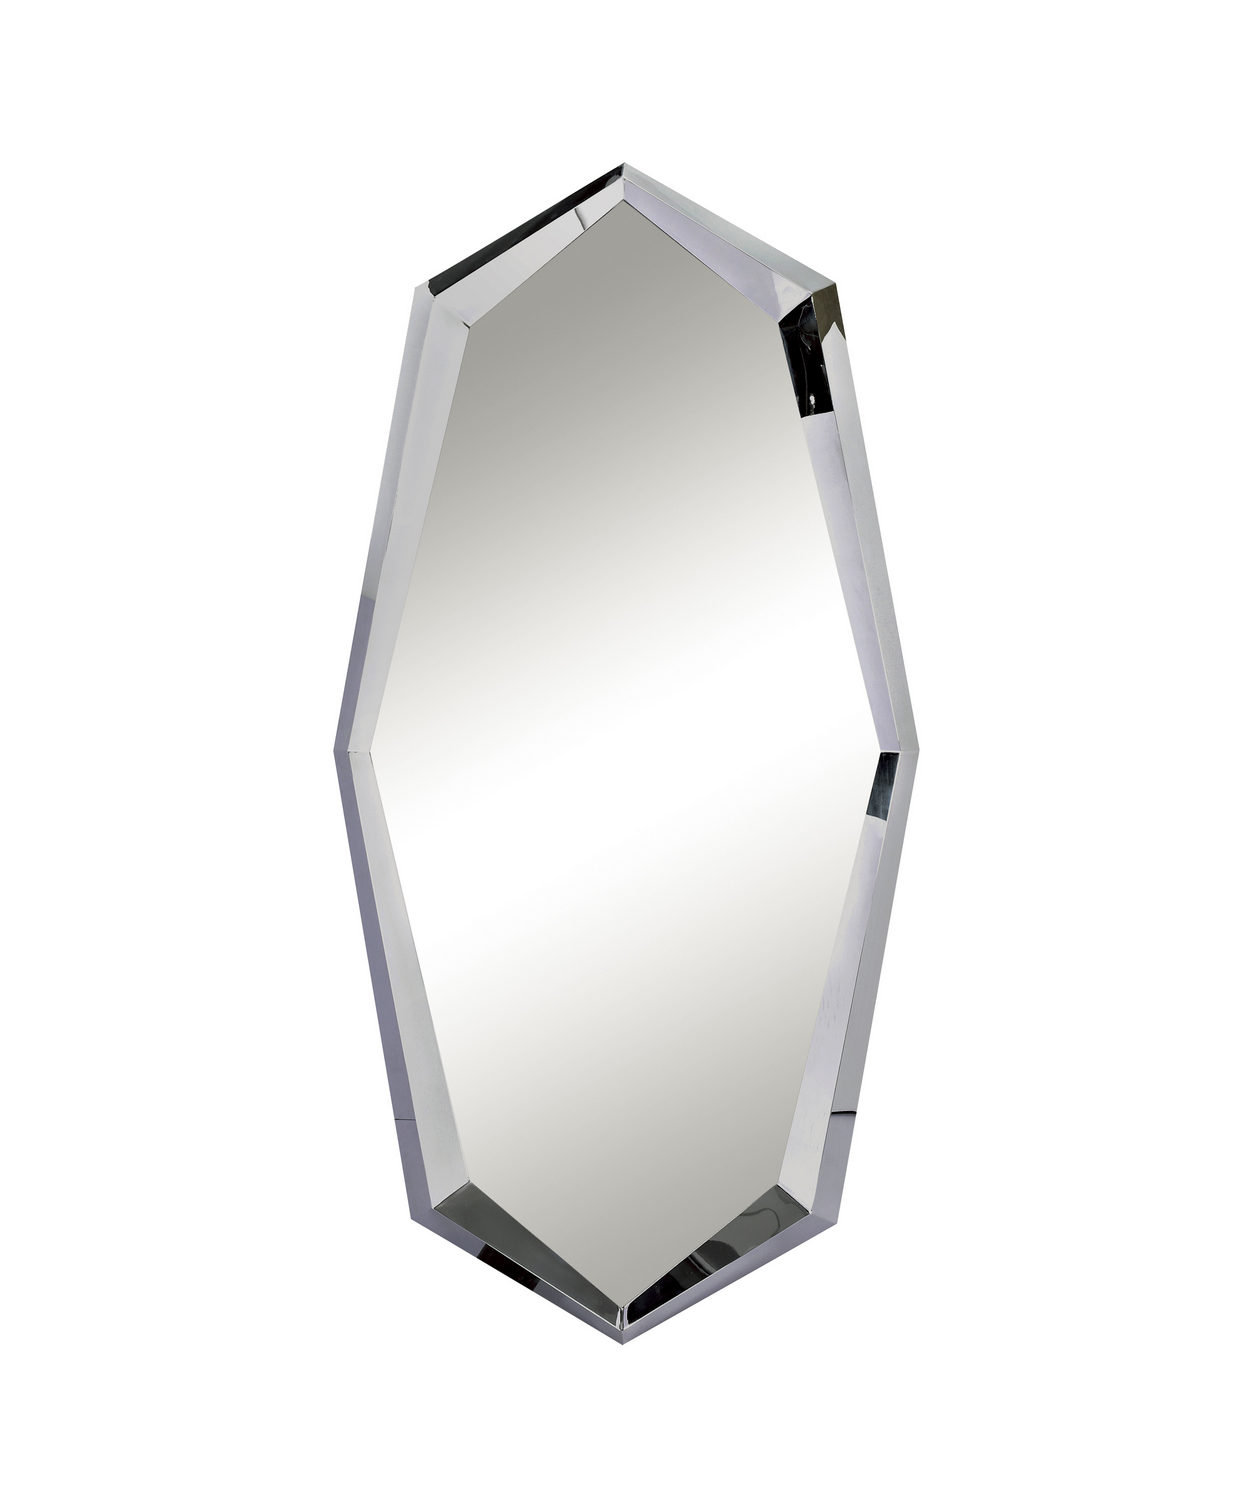 Boulder Mirror from the Boulder collection by ET2 E20029 PC